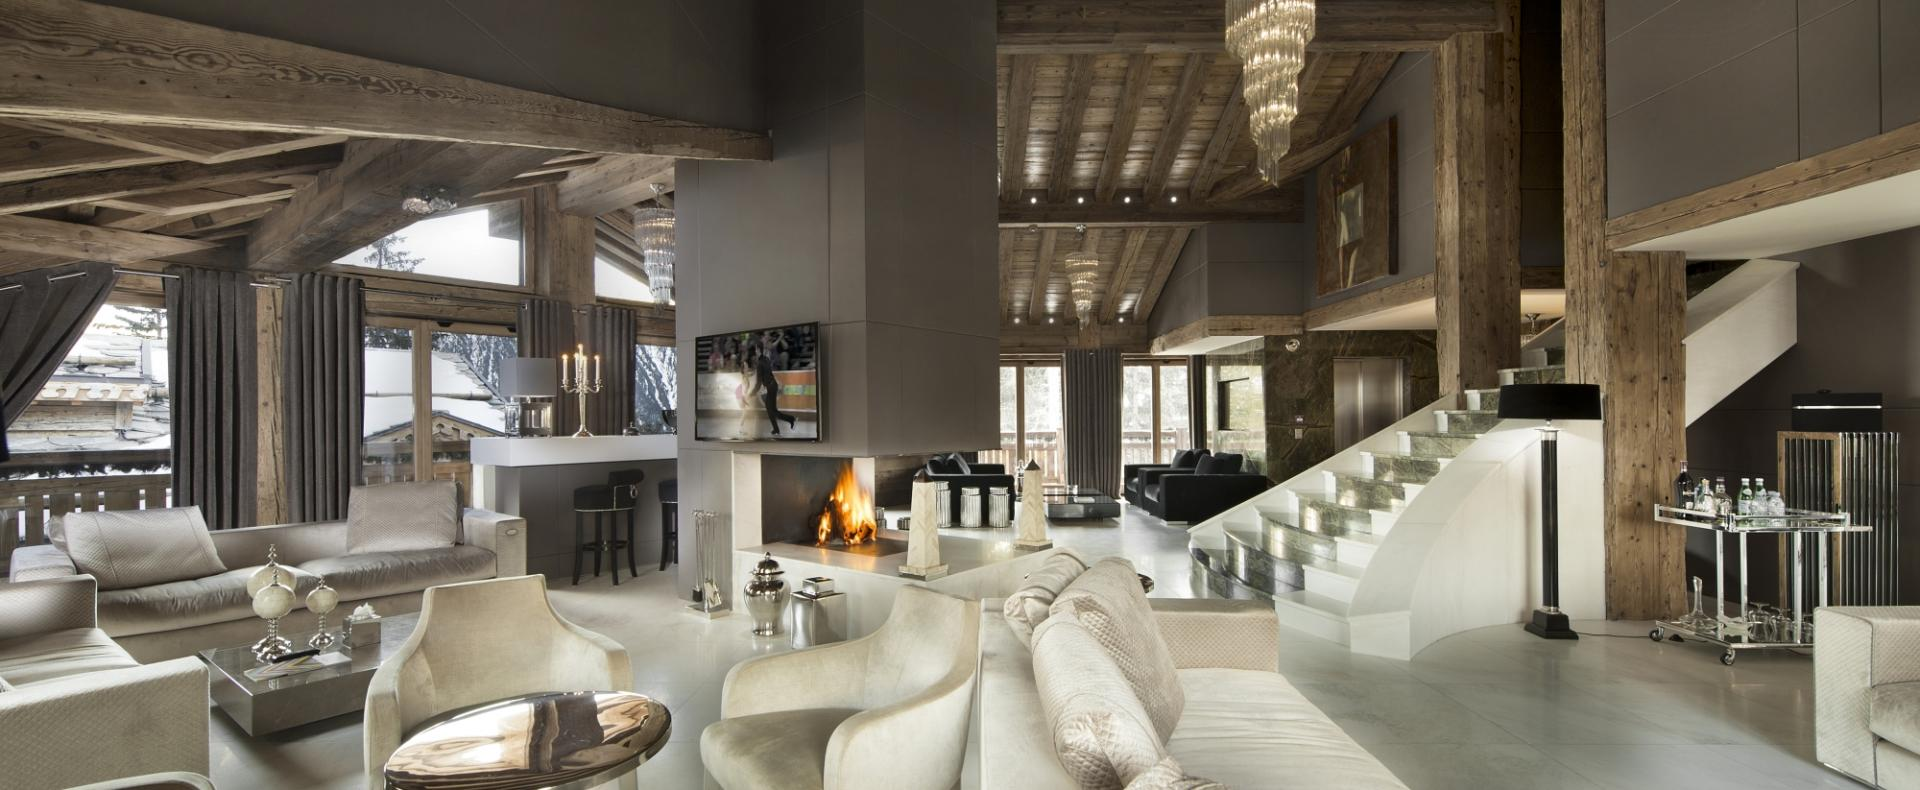 Chalet tahoe ski courchevel 1850 france ultimate luxury for Interieur france